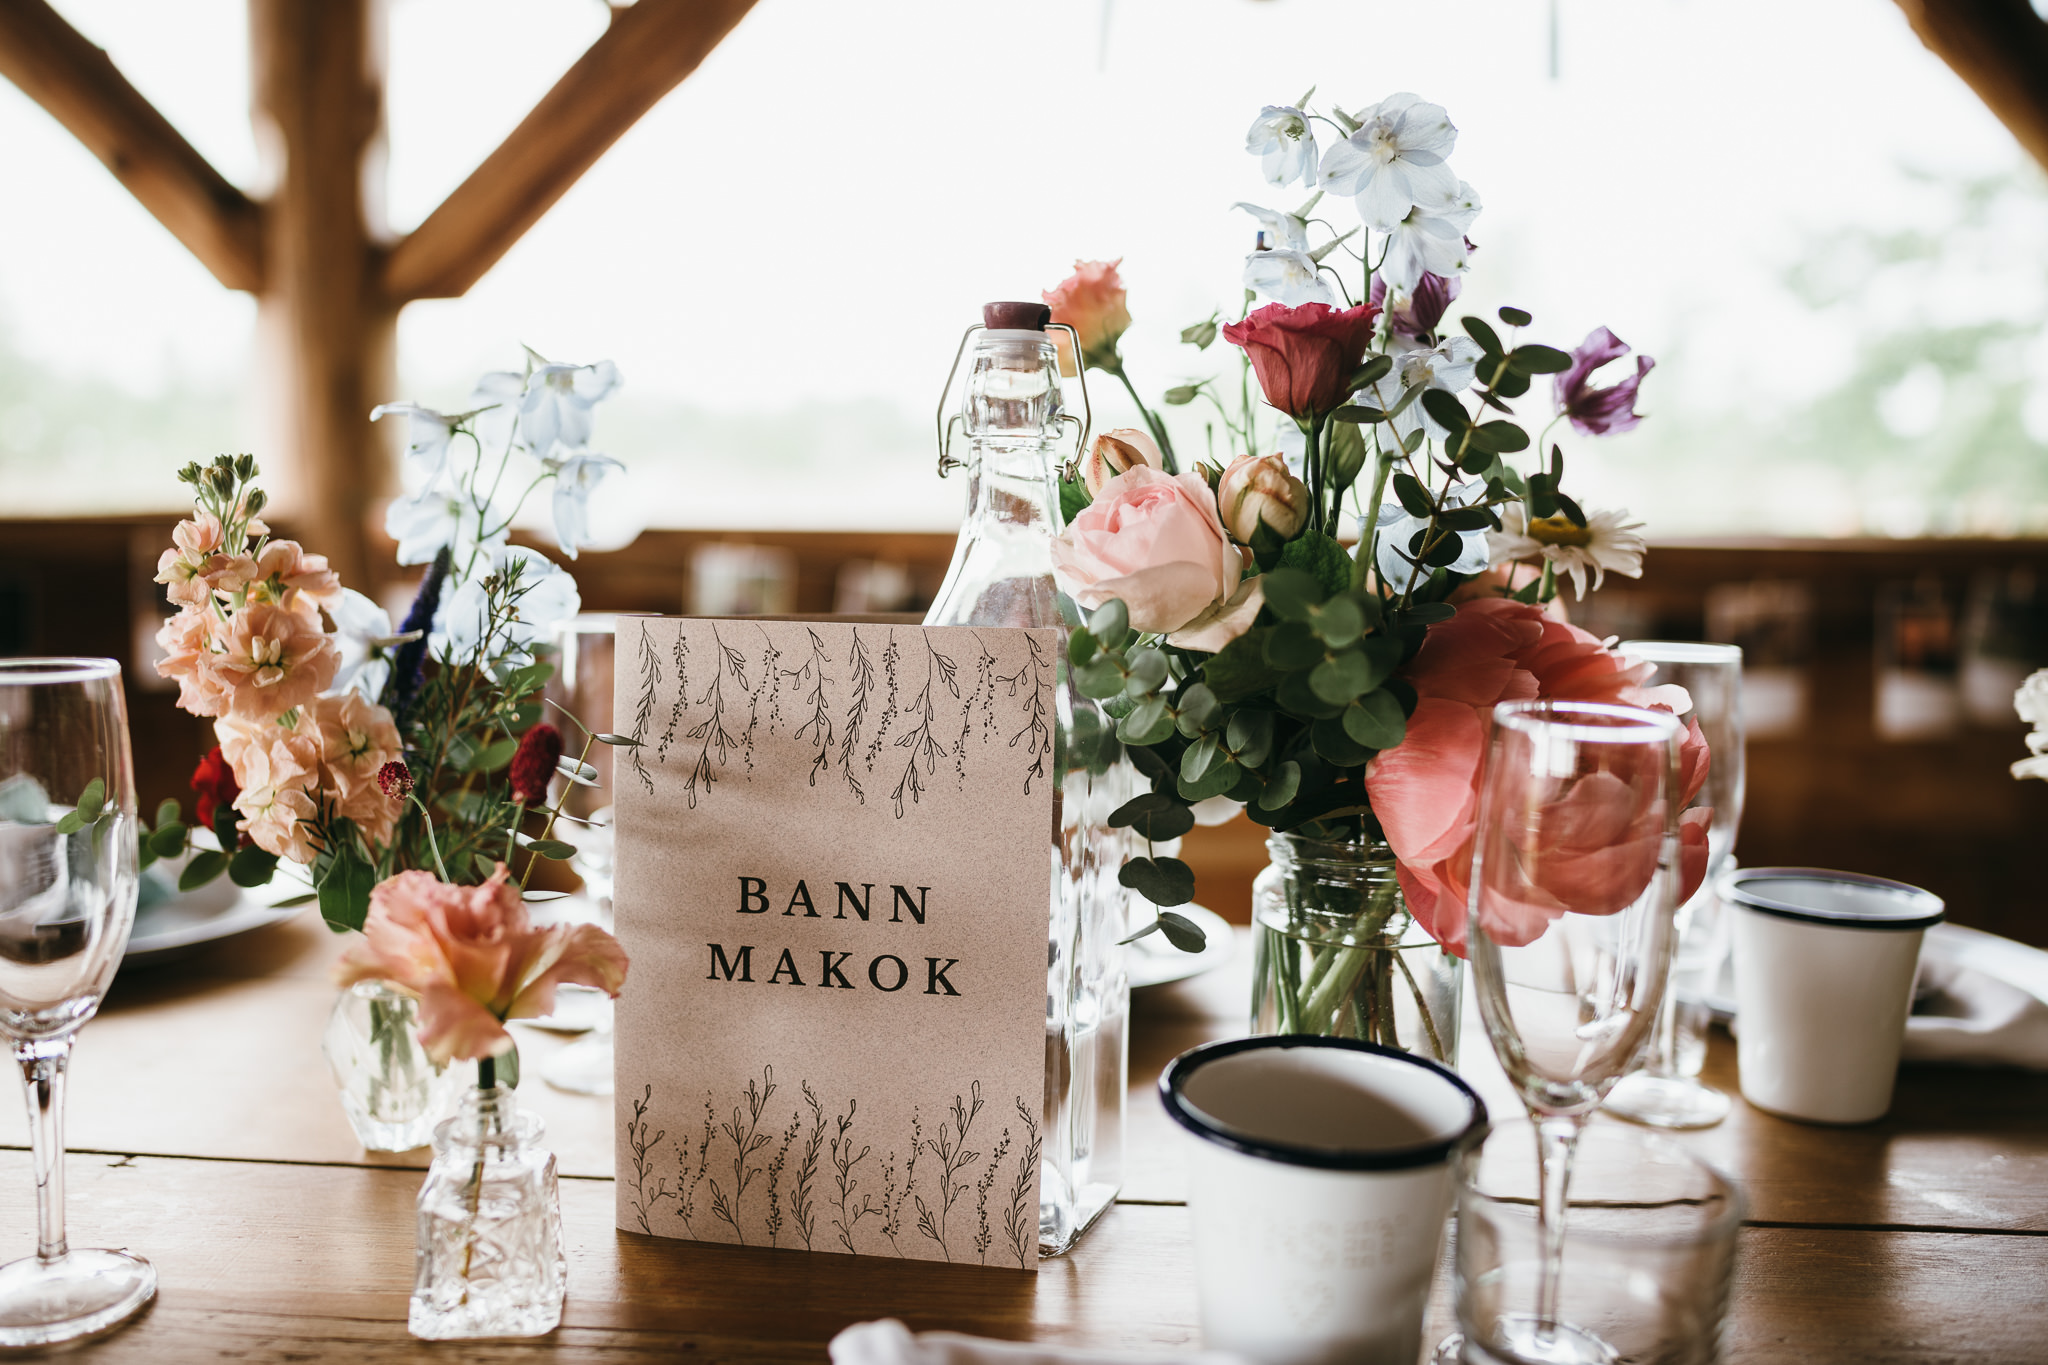 Farm camp wedding details